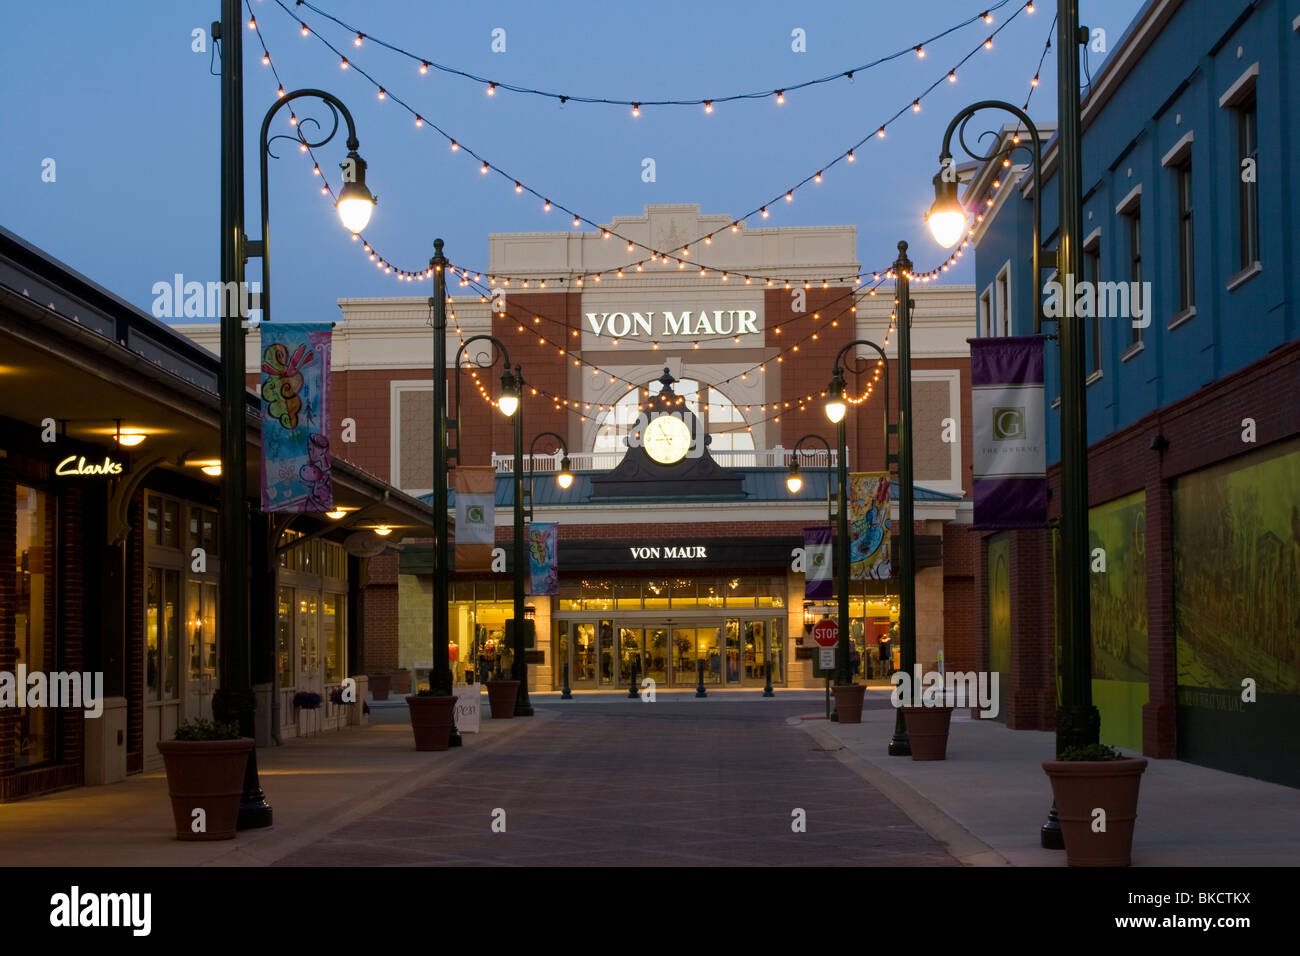 The Greene, Beavercreek, Ohio. 38K likes. A great place to shop, live, work and play, The Greene is a pedestrian-friendly community featuring nearly 90 /5(K).